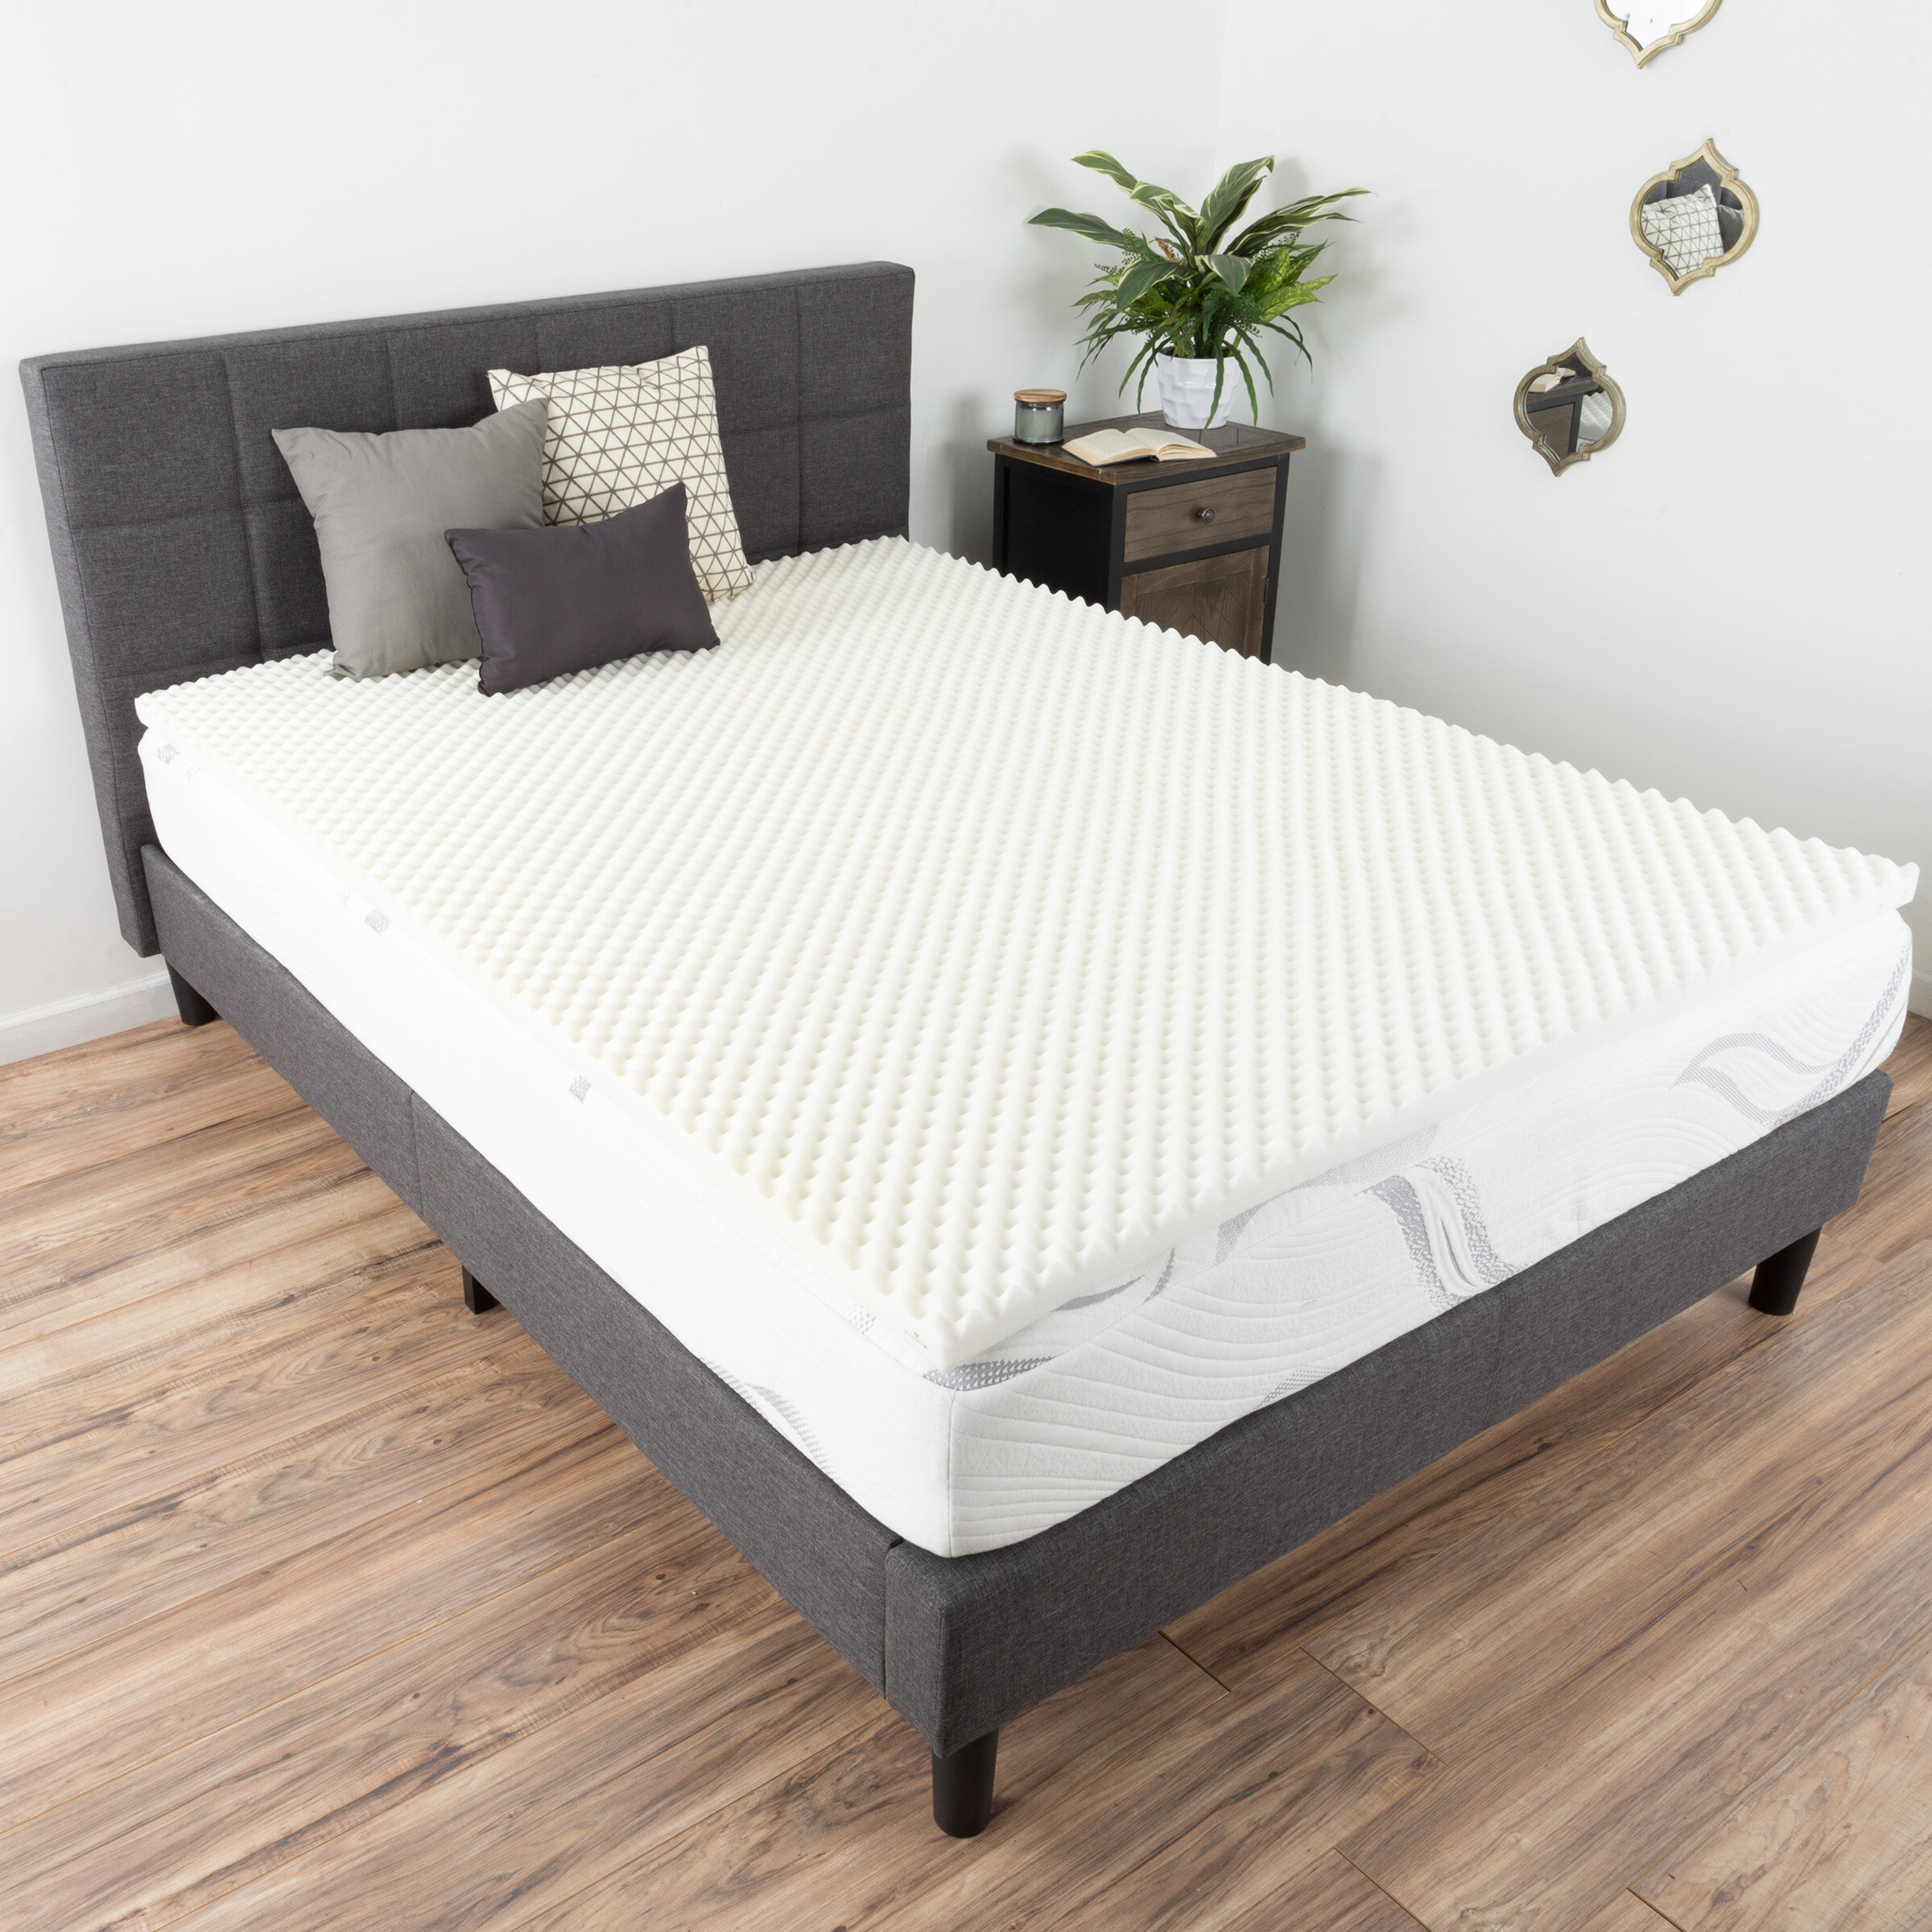 Alwyn Home Egg Crate 2 Memory Foam Mattress Topper Wayfair